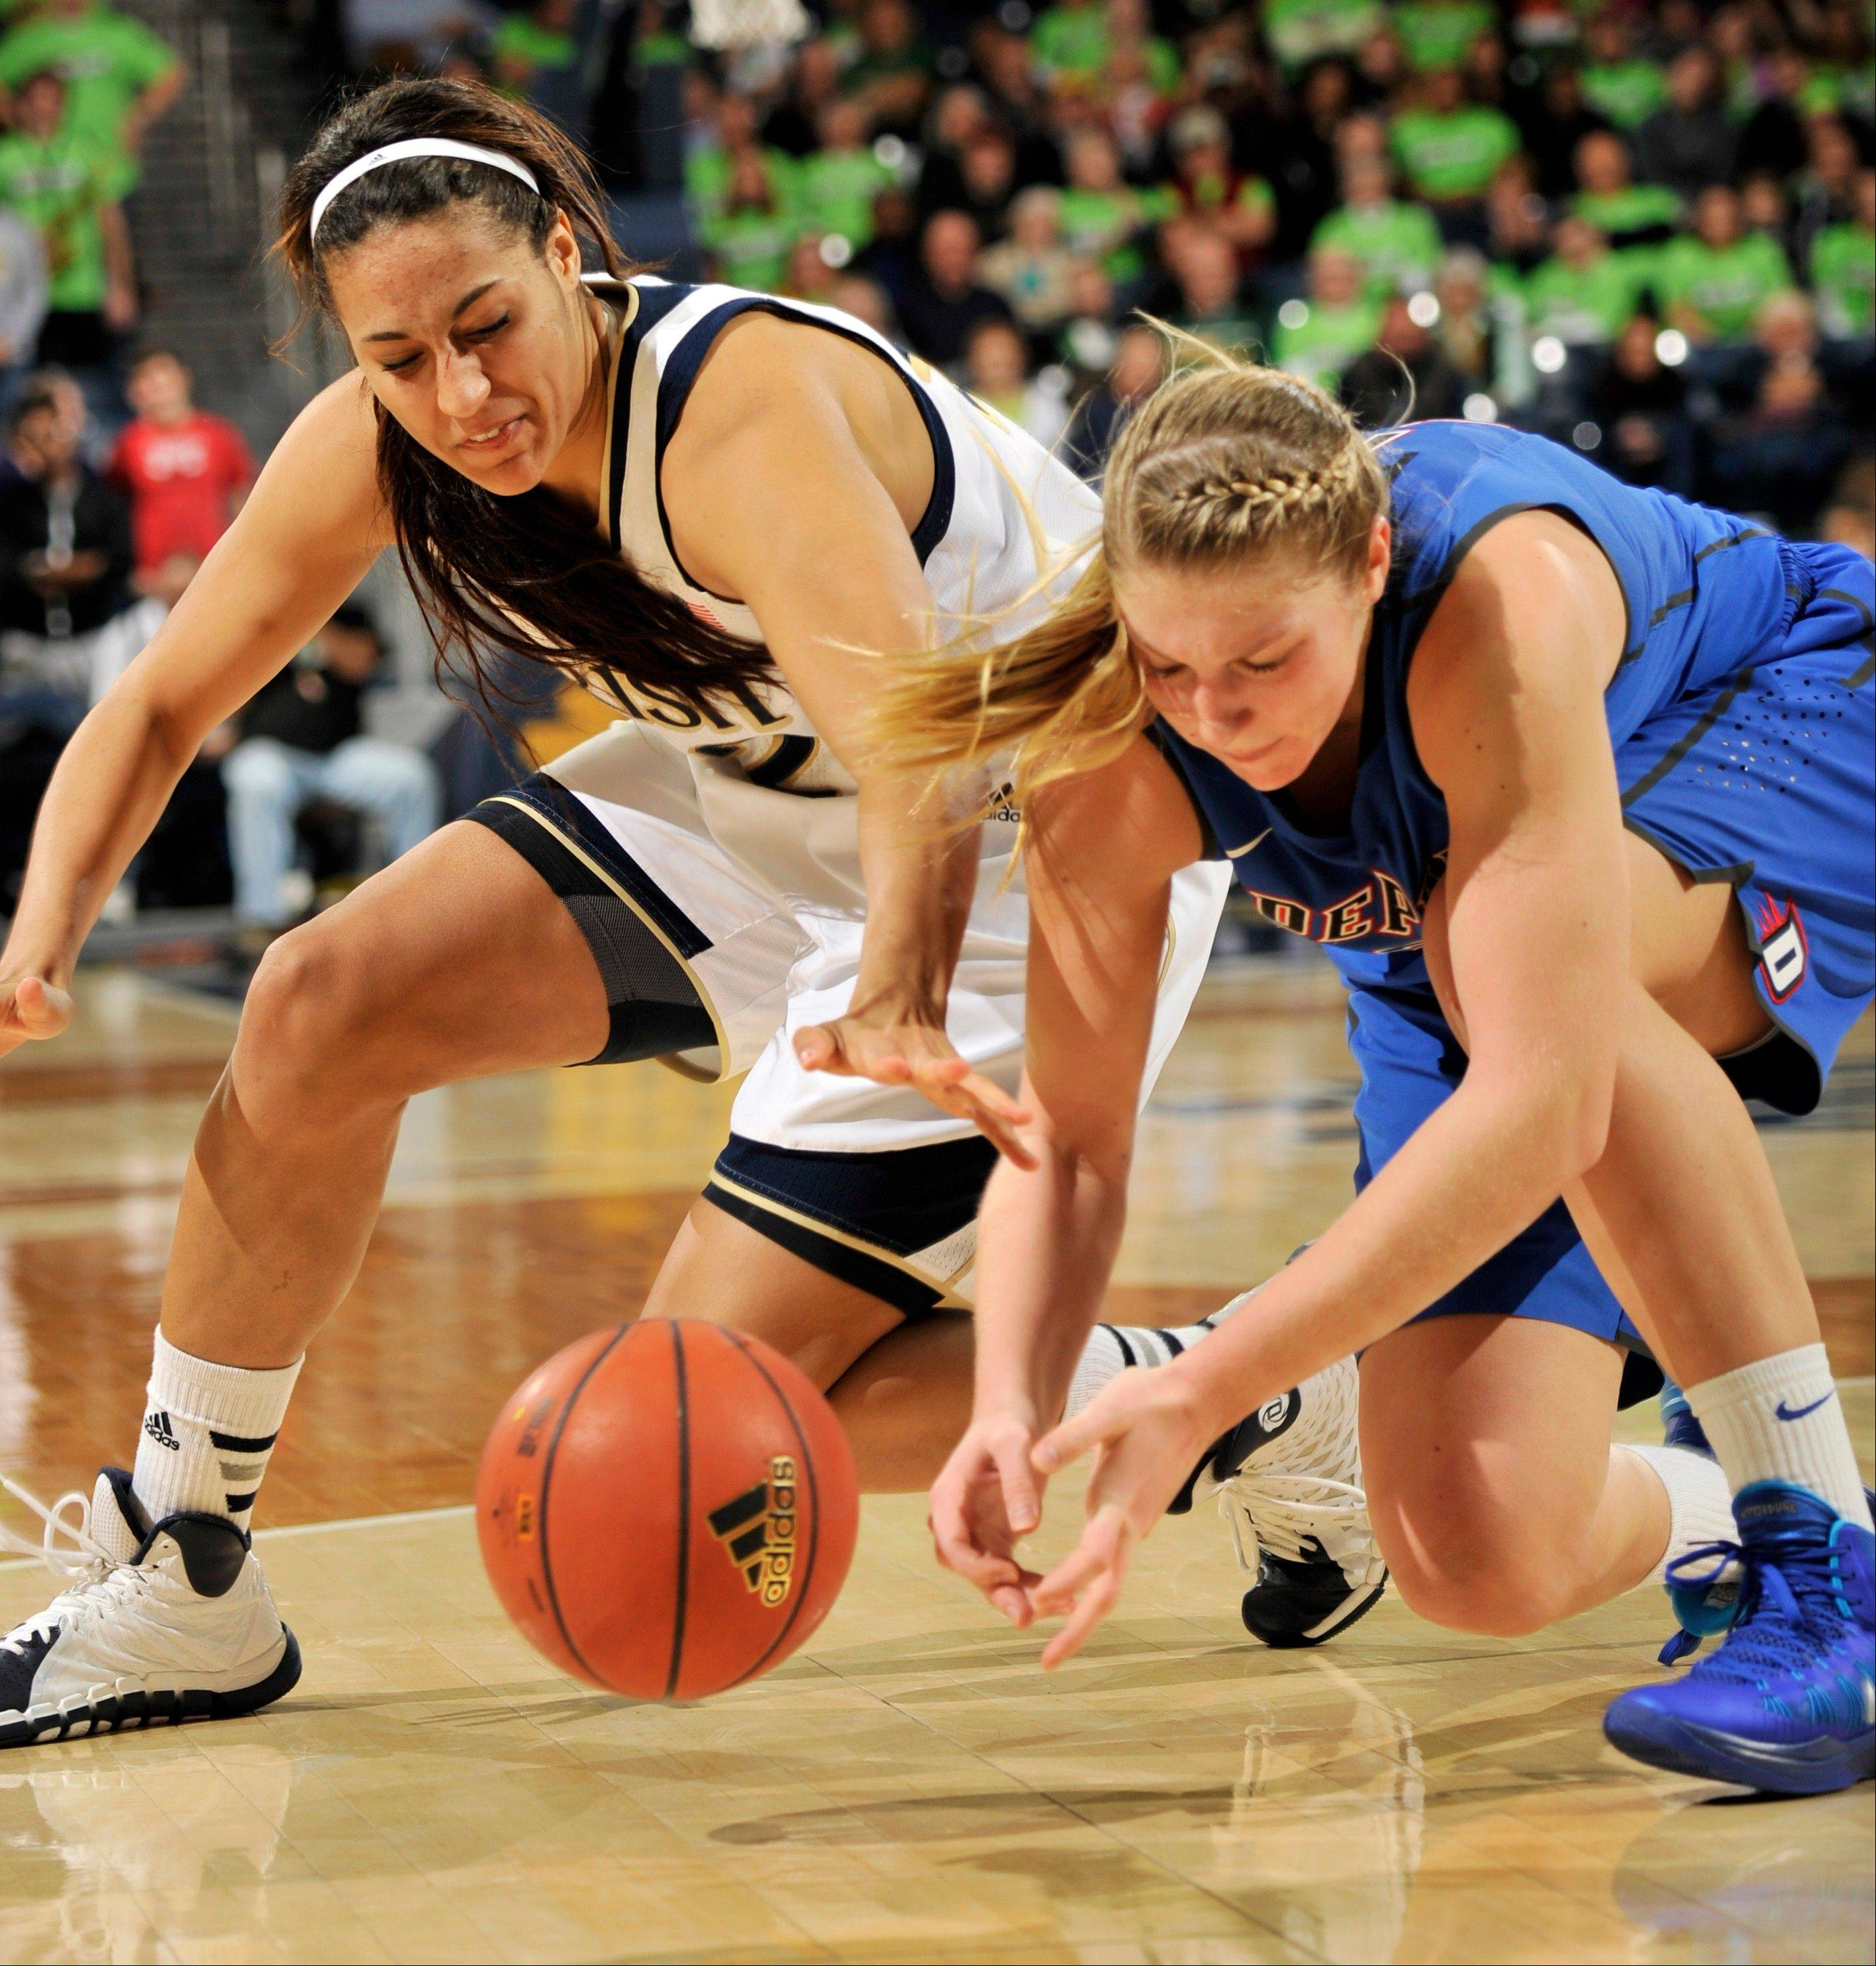 Notre Dame forward Taya Reimer, left, and DePaul guard Megan Podkowa battle for a loose ball during the second half of an NCAA college basketball game, Tuesday, Nov. 26, 2013, in South Bend, Ind. Notre Dame won 92-76. (AP Photo/Joe Raymond)